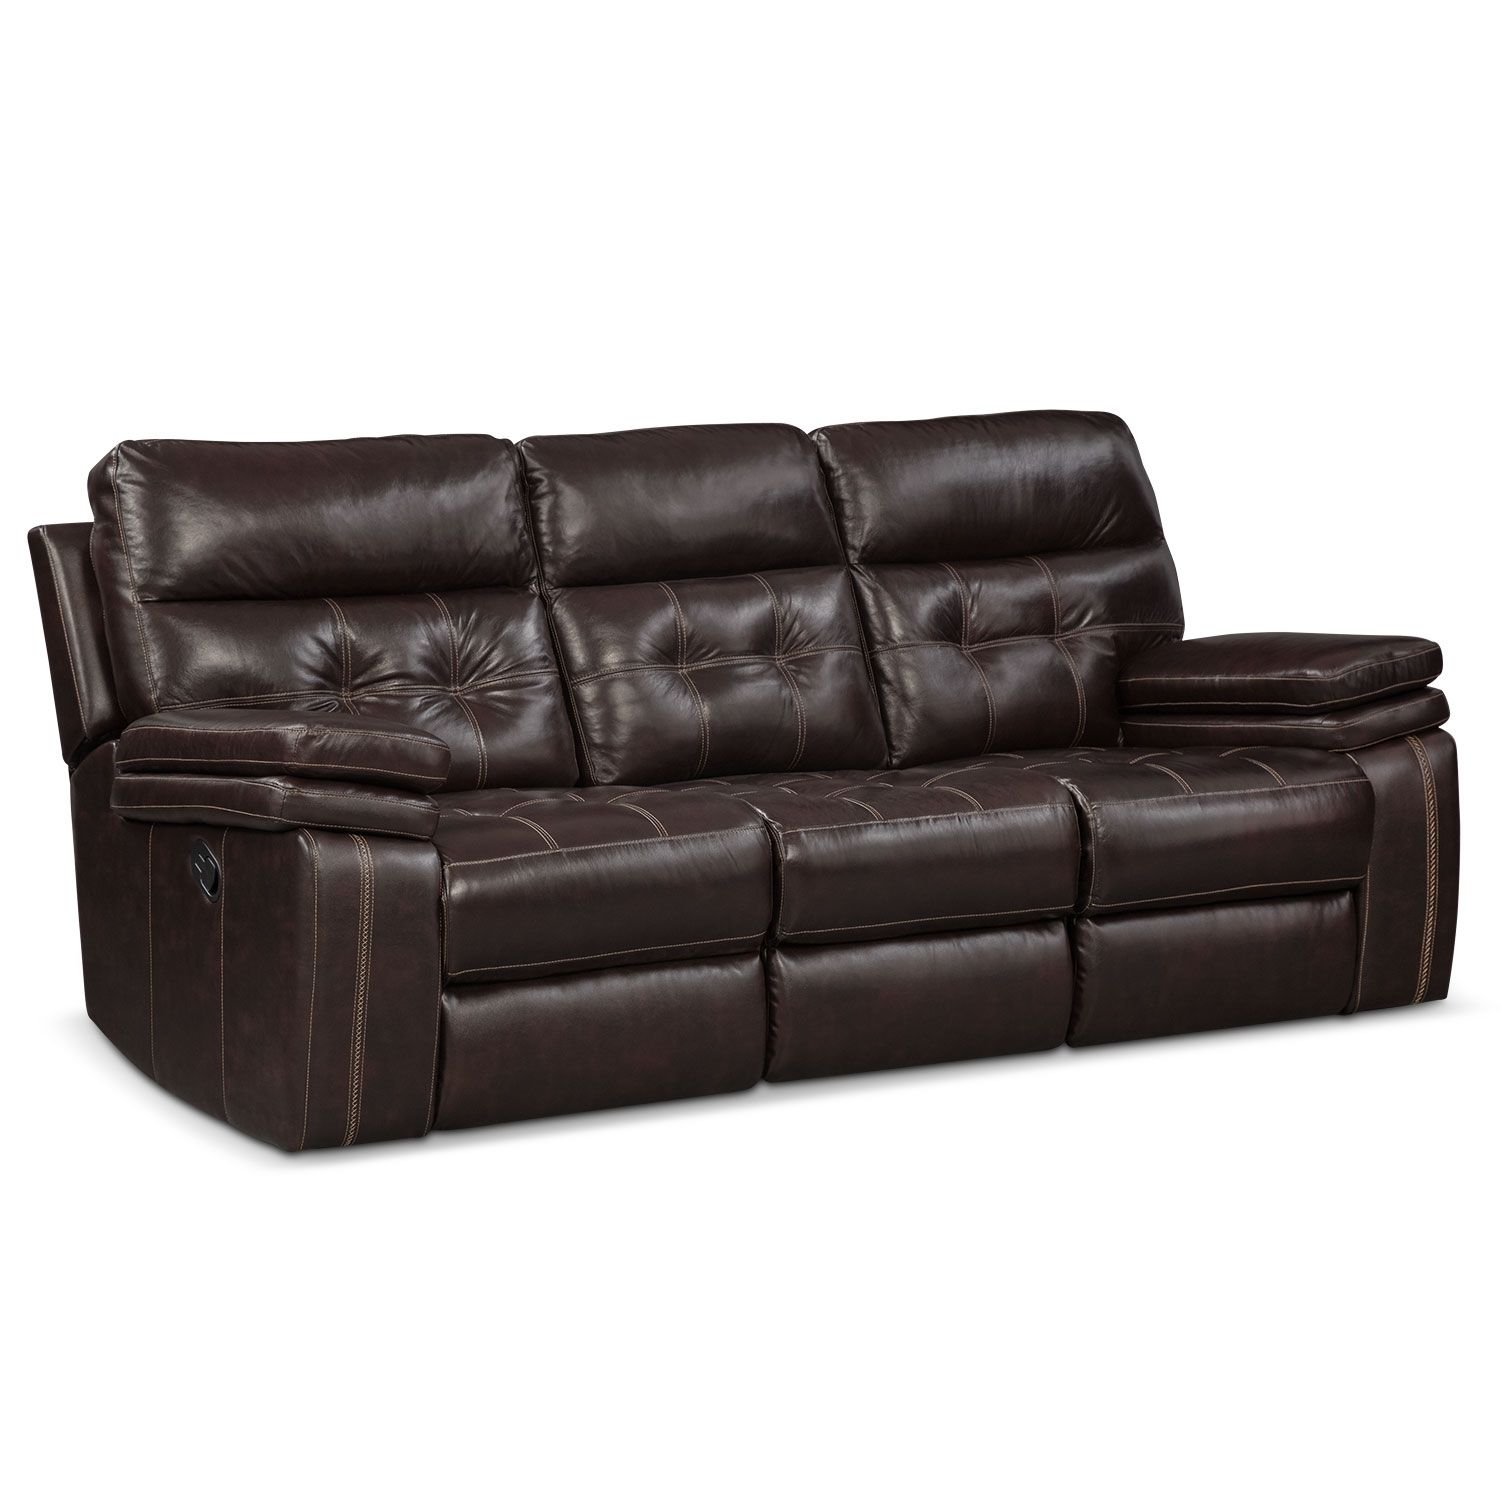 Sky Ridge Mahogany Leather Reclining Sofa $999 99 90W x 40D x